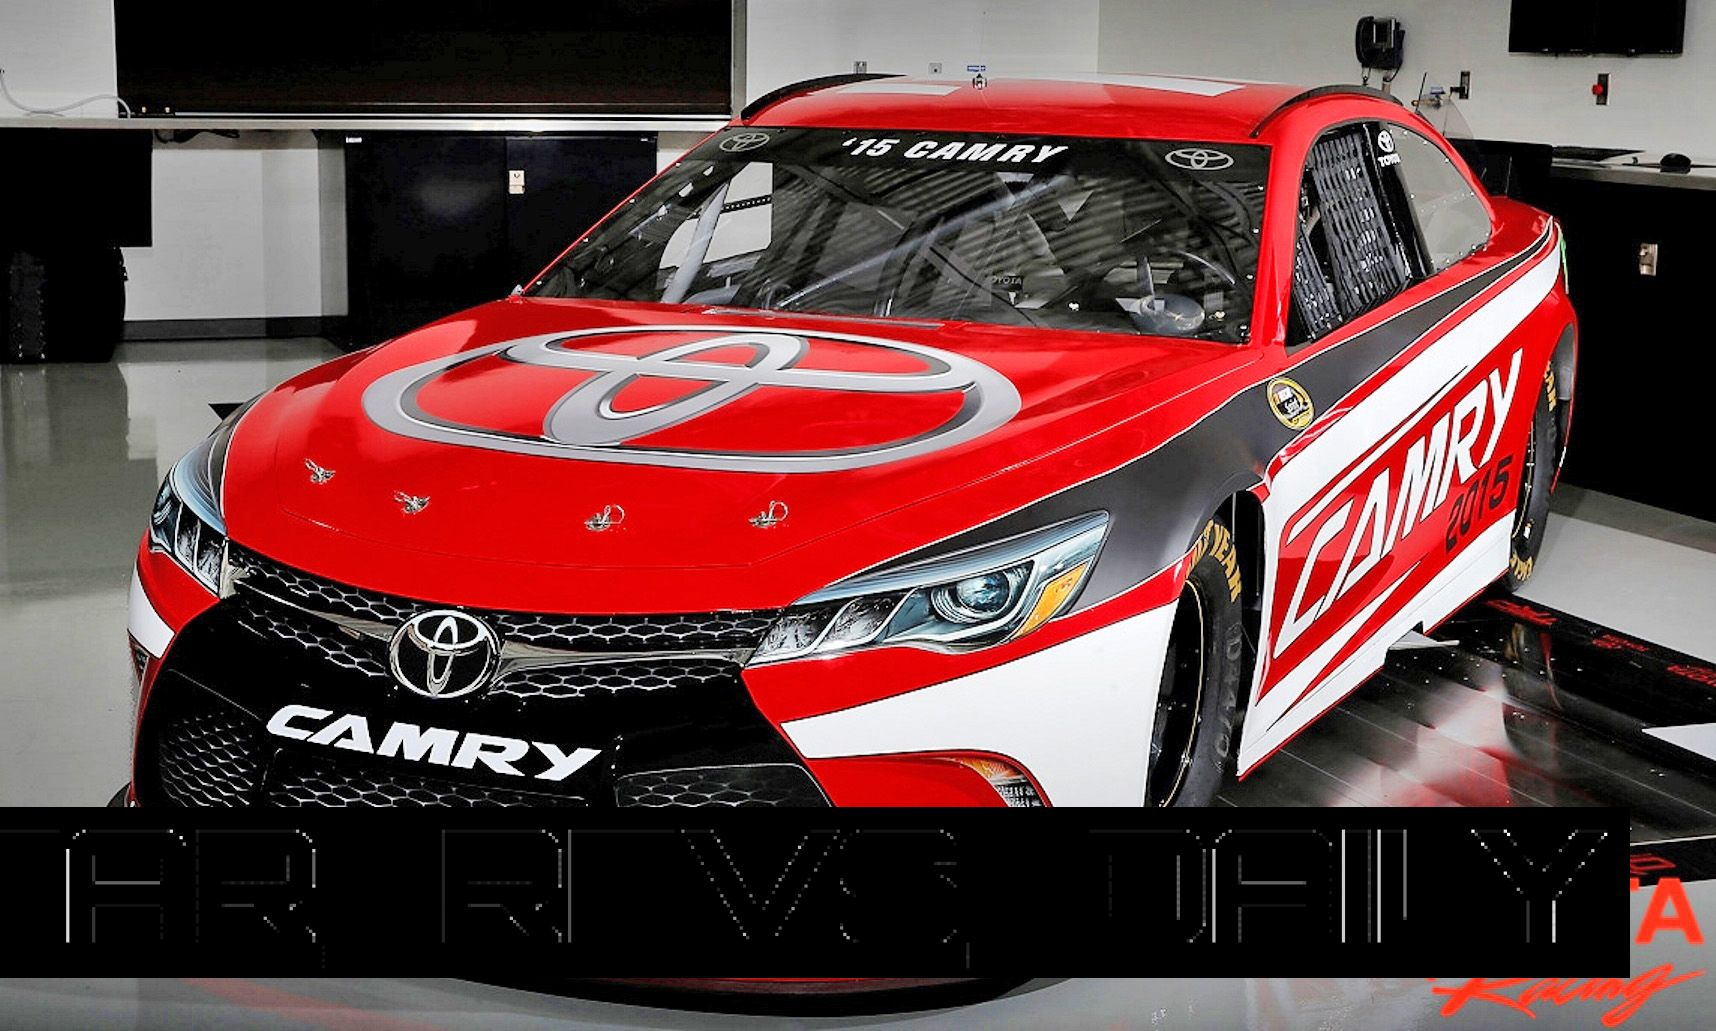 Gen 6 Toyota Camry Nascar Revealed Ahead Of 2015 Season